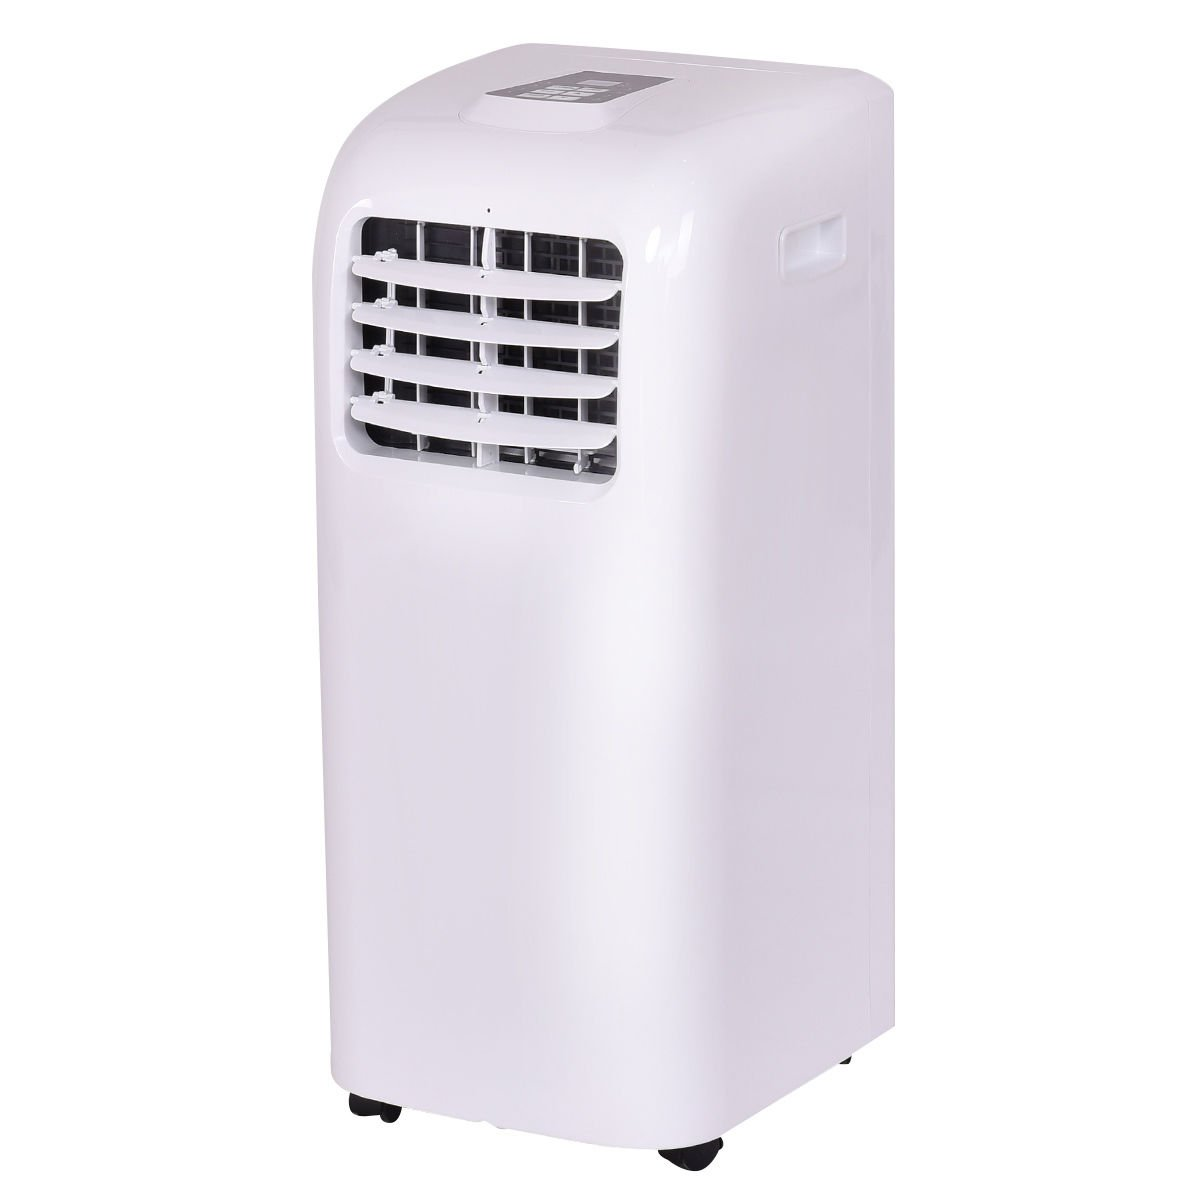 8000 Btu Air Conditioner: Is It Right For My Size Of Room?